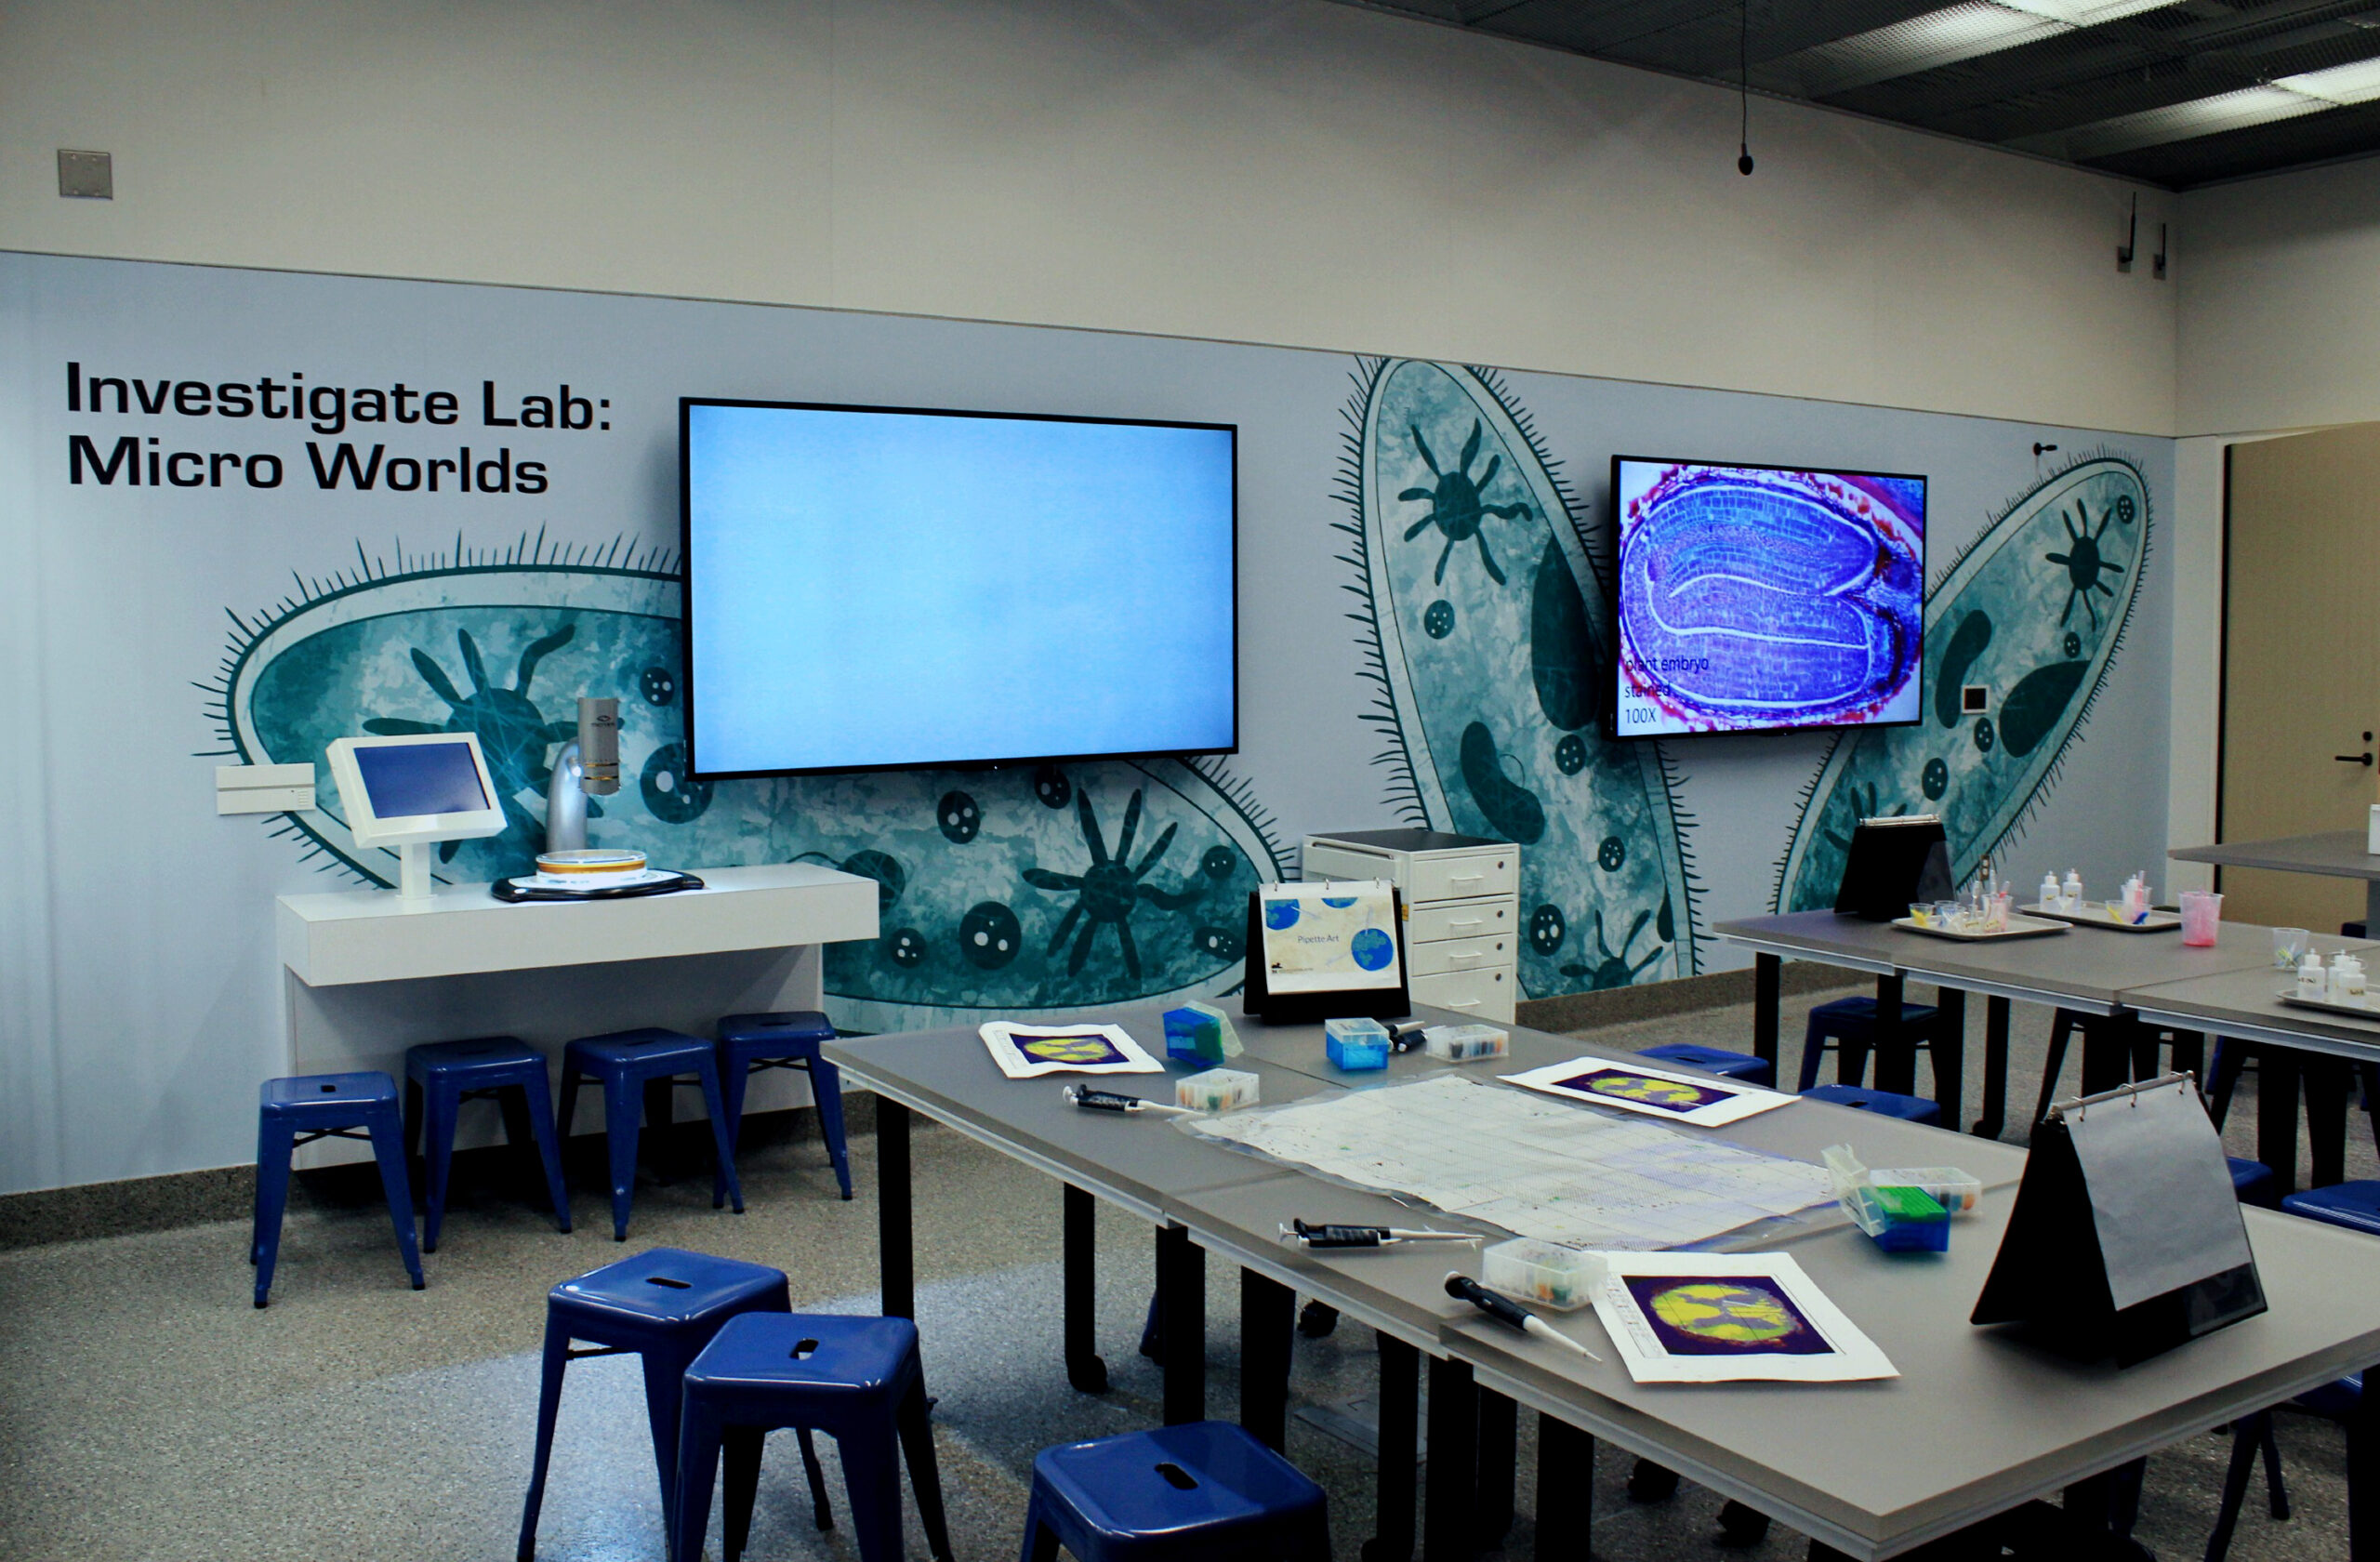 A bacterium lab mural Flutter & Wow designed for the Investigate Labs.